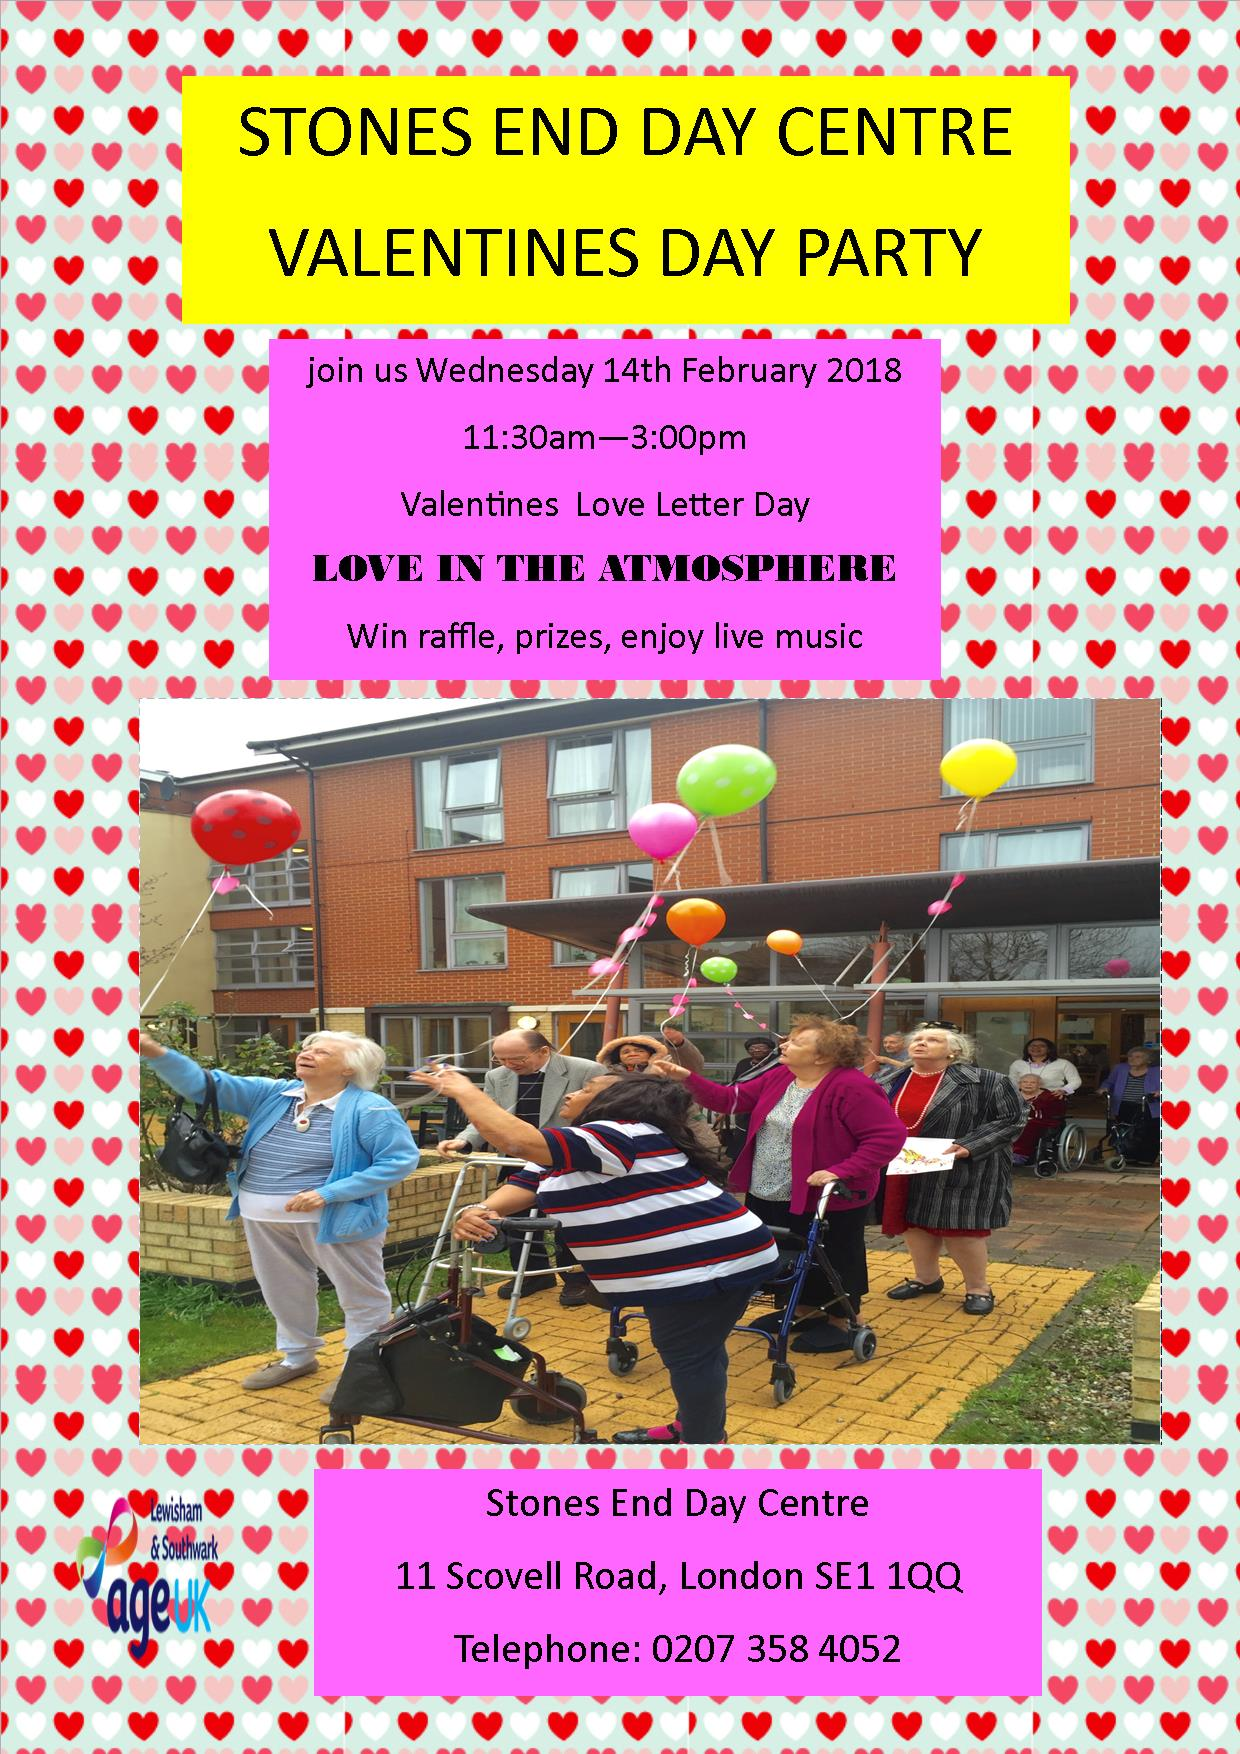 Stones End Day Centre Valentines Day Party